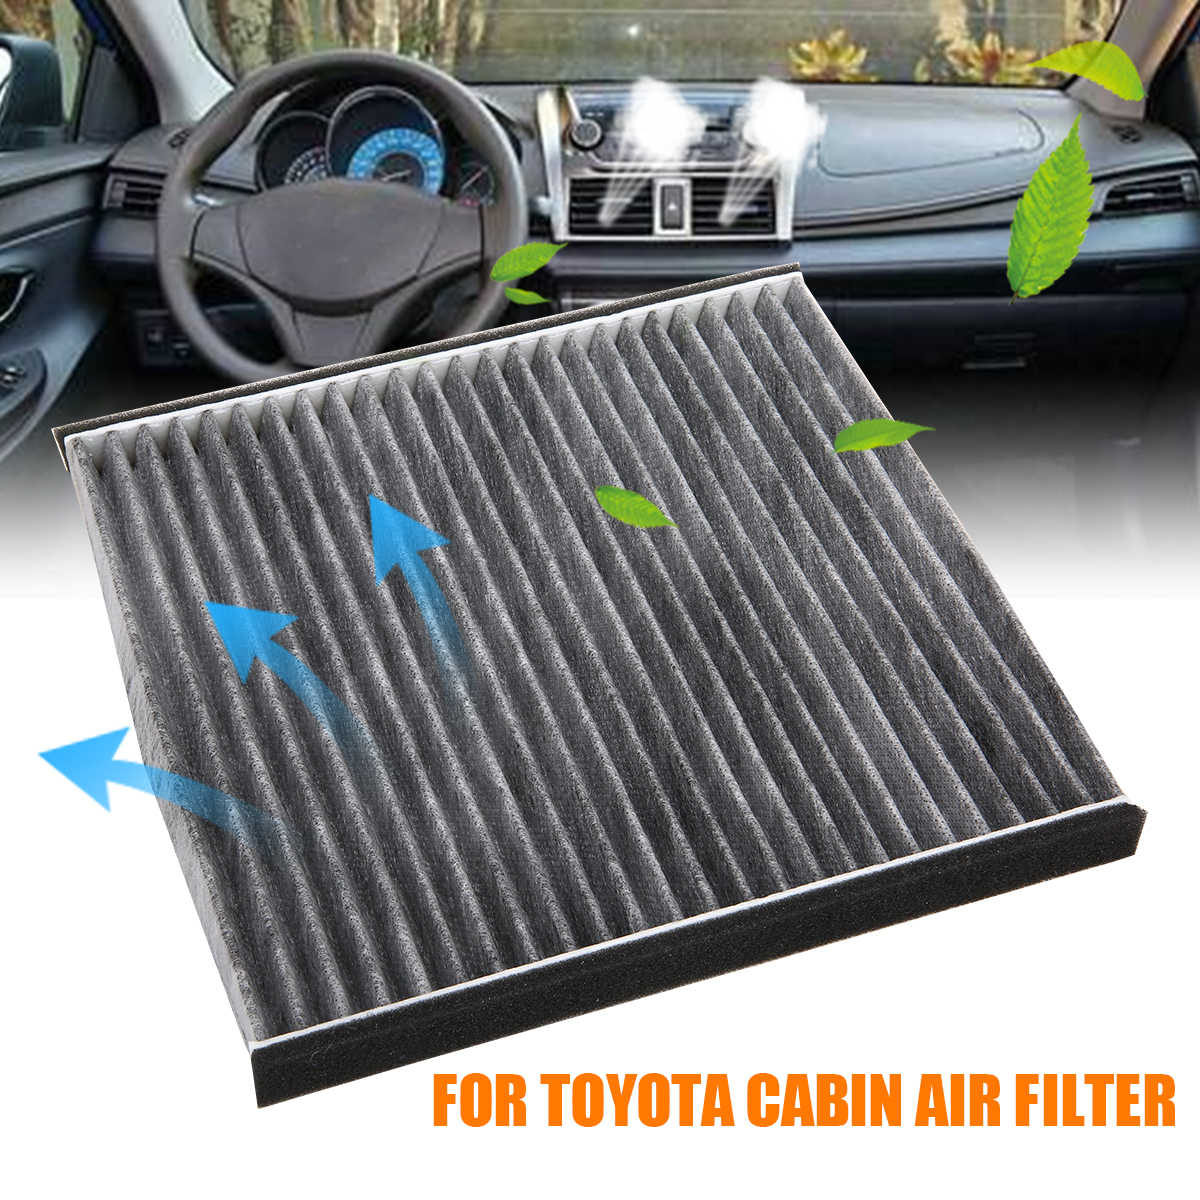 For Toyota 4 Runner Avalon Camry Corolla Cruiser 87139-33010 Dedicated Air Filter&Cabin Air Filter 88568-0D520/8104300-008